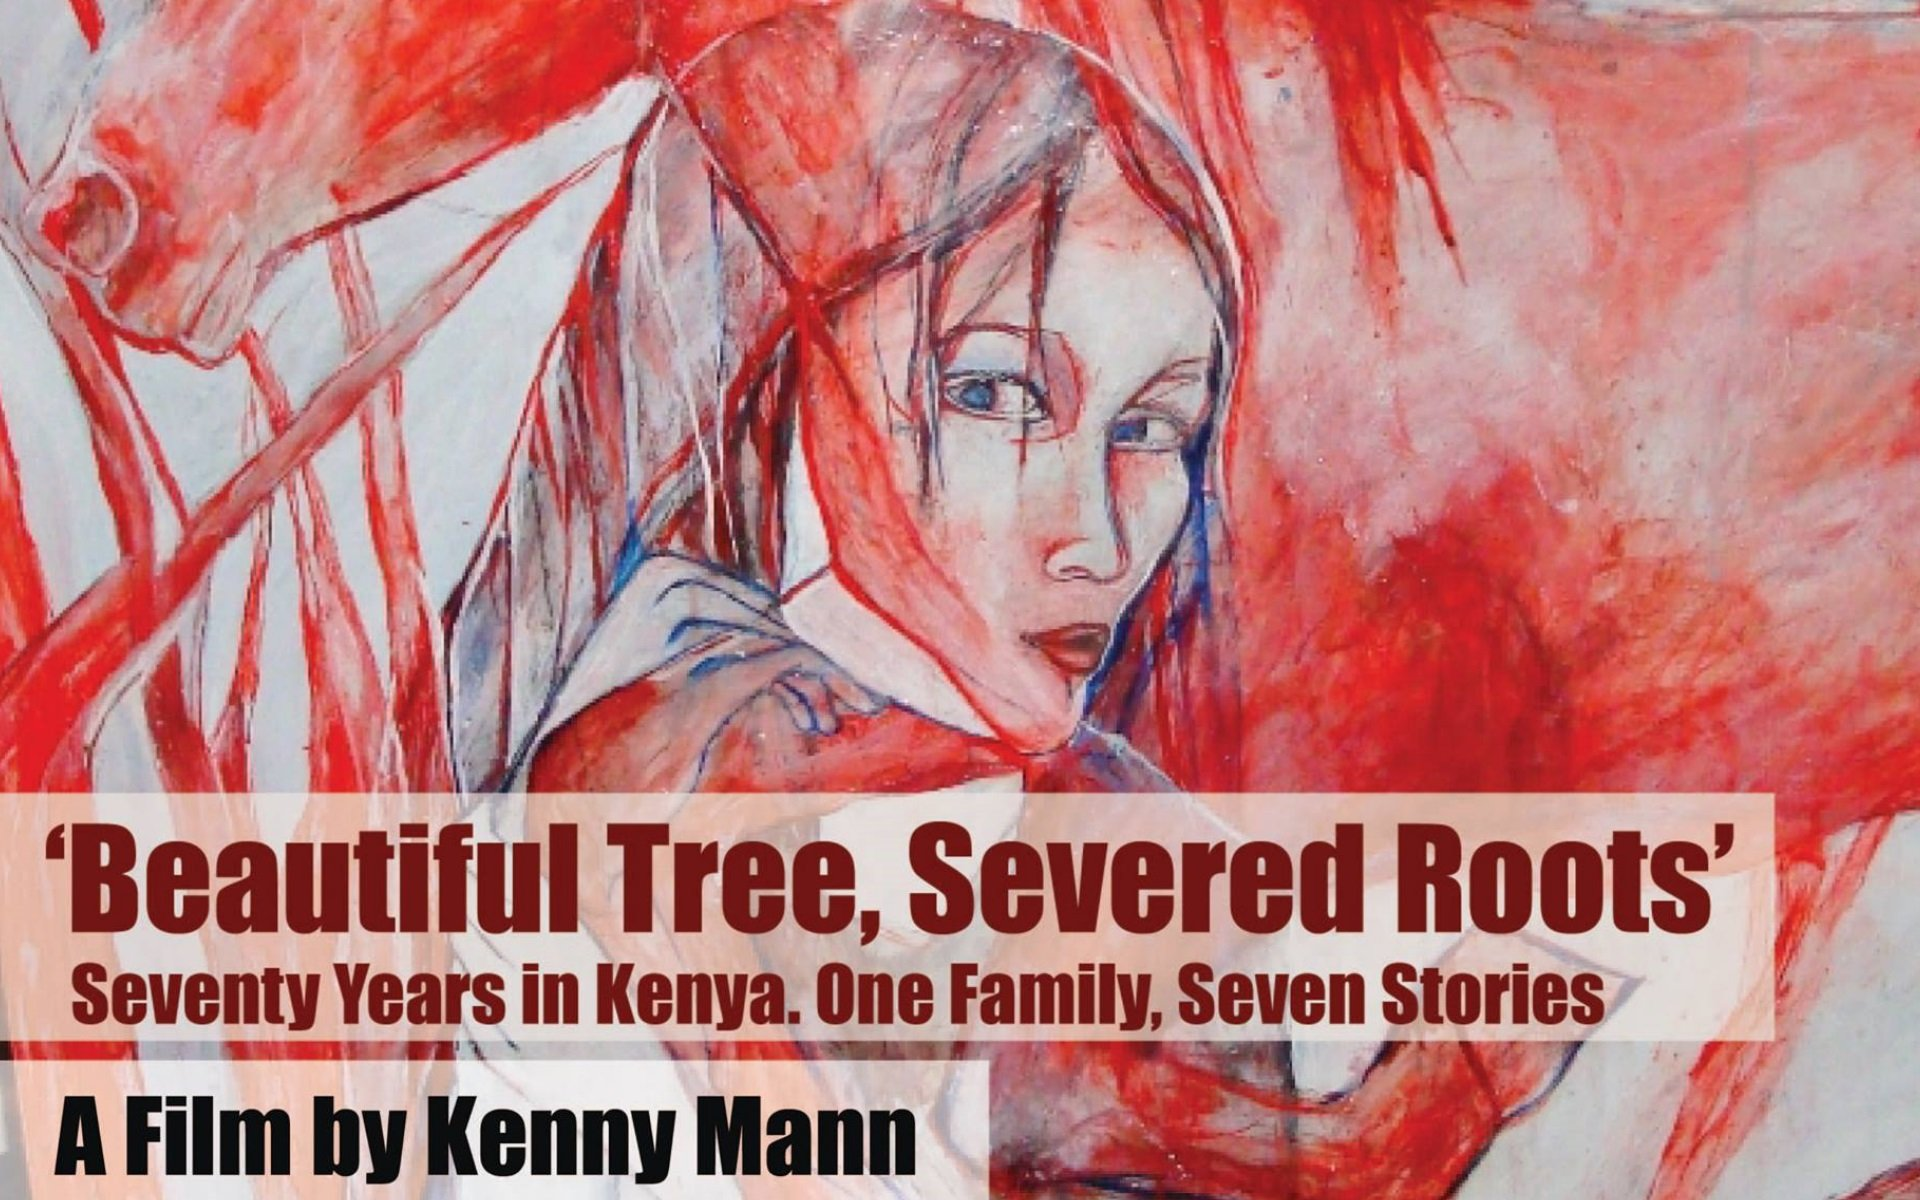 Beautiful Tree, Severed Roots chronicles Mann's family history as Romanian Jews living in Kenya and their unique relationship with Kenya's political elite.